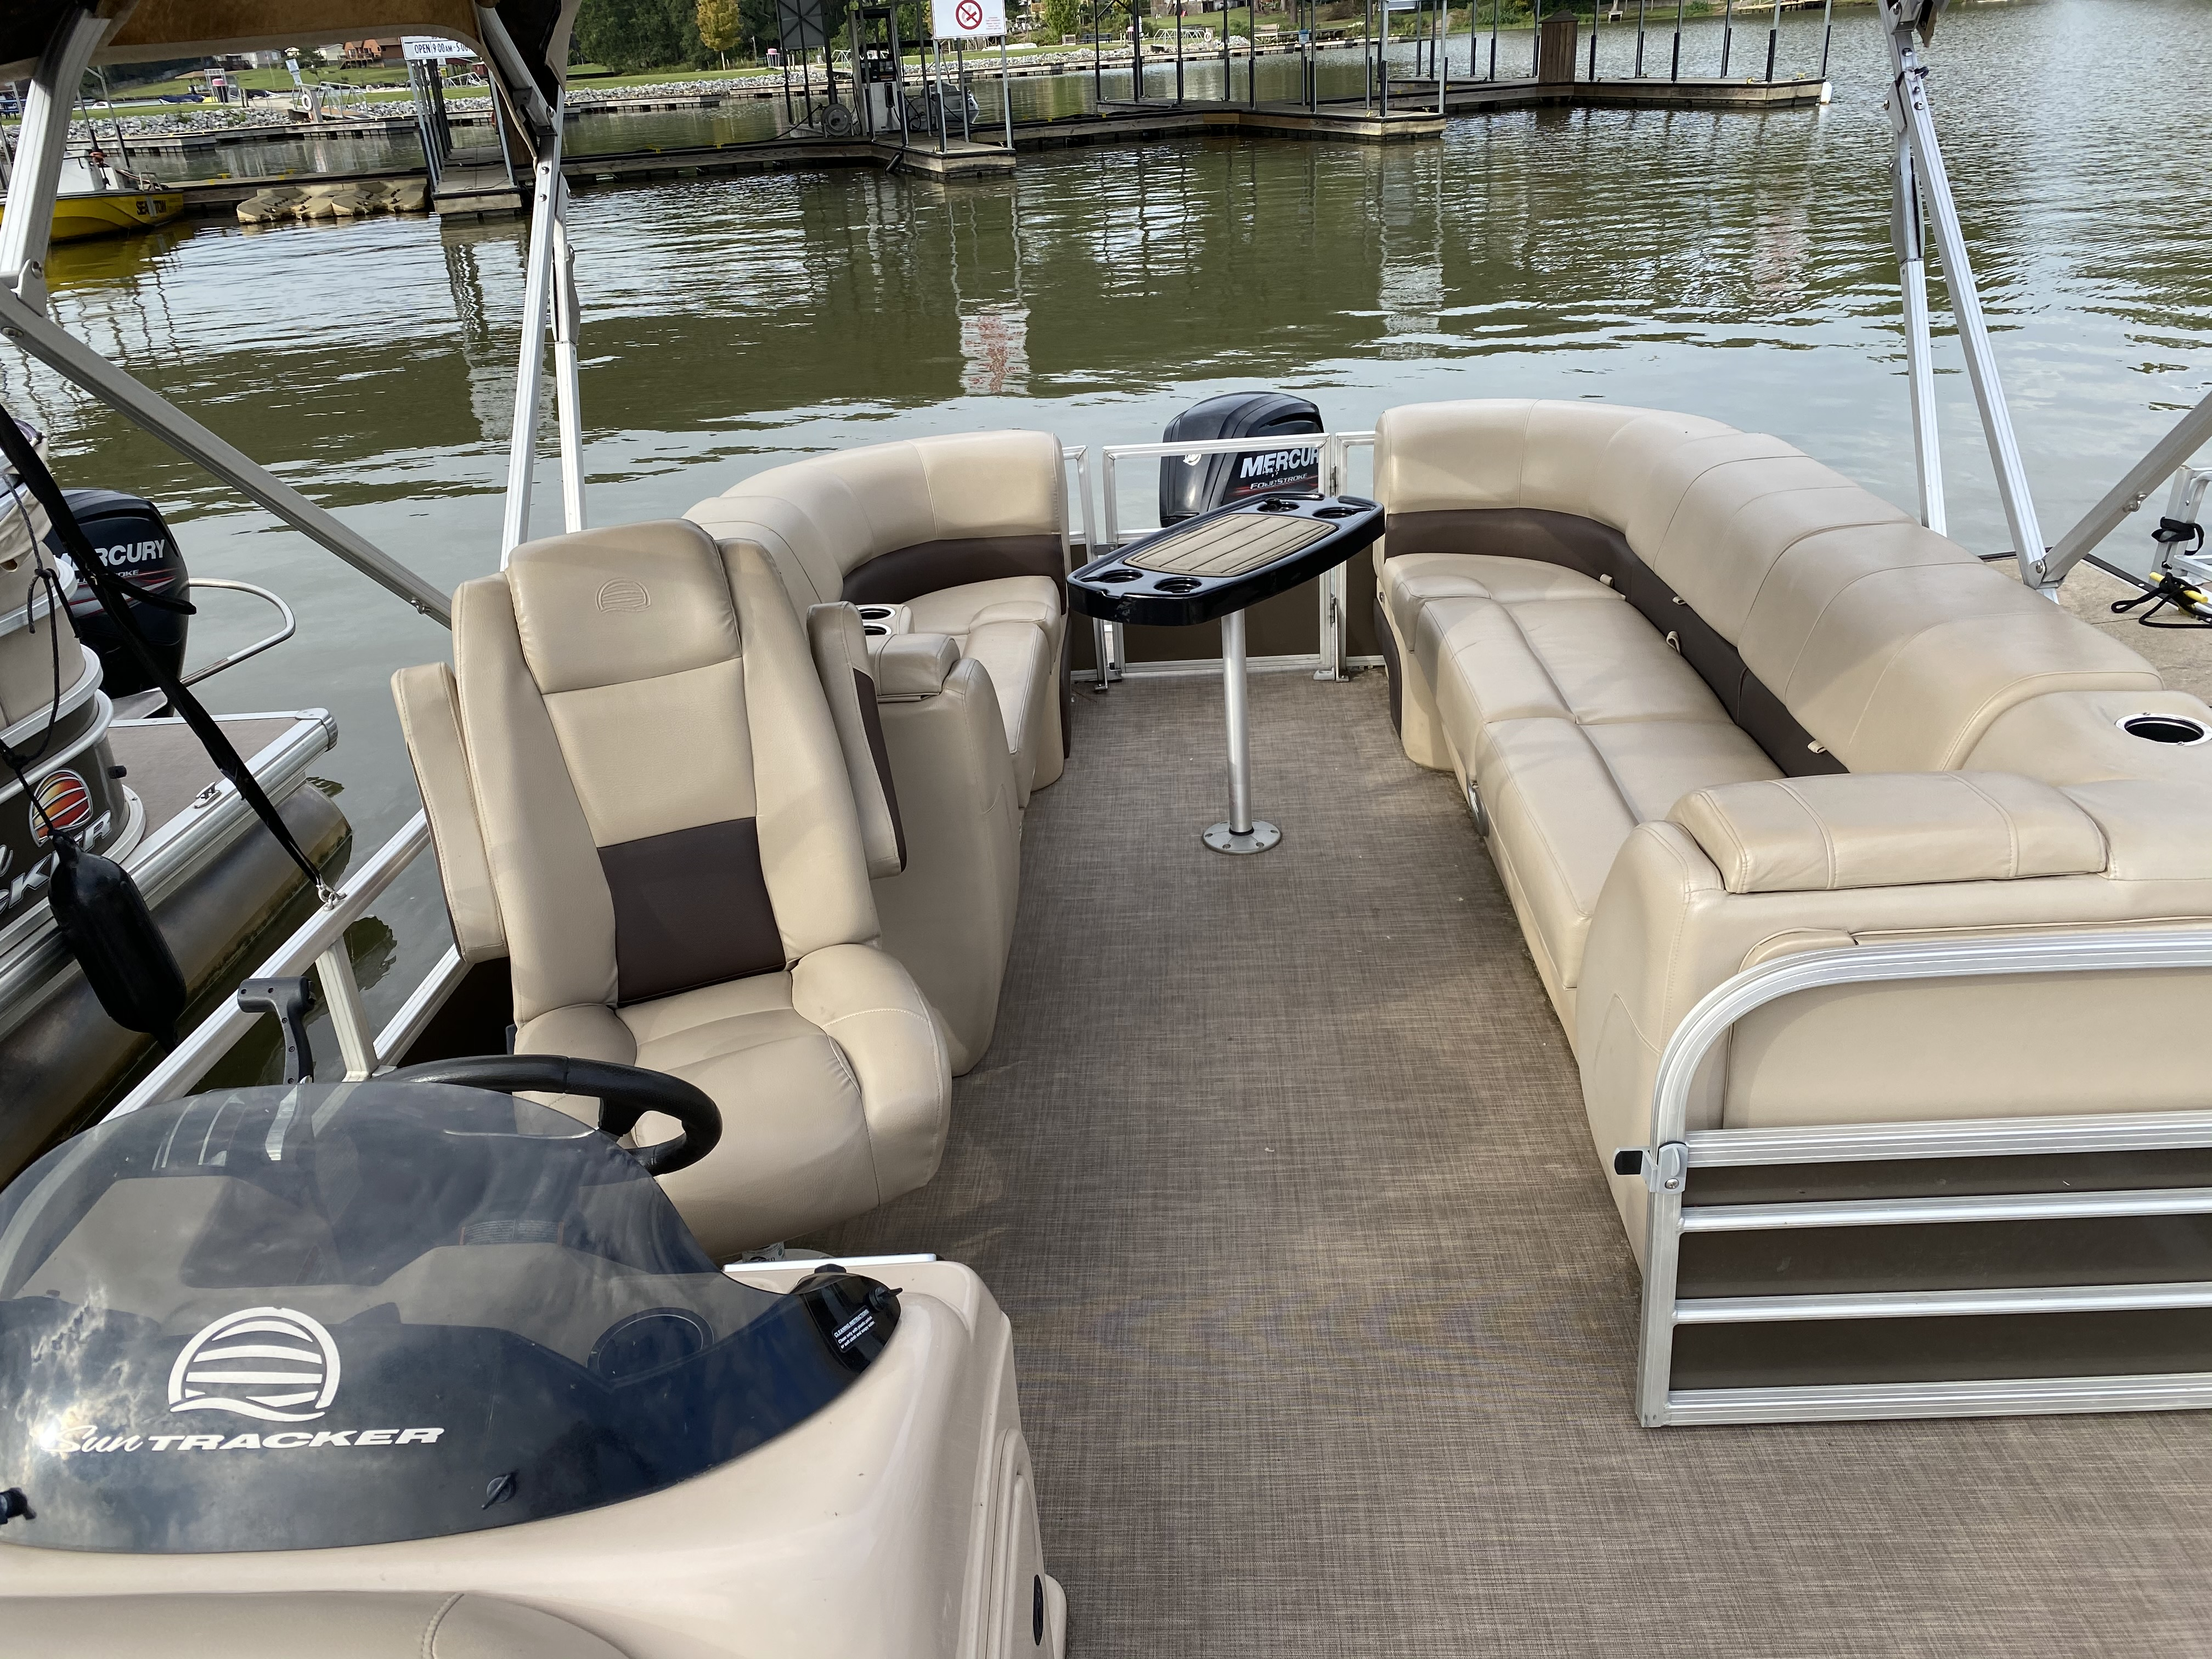 2019 Sun Tracker boat for sale, model of the boat is PARTY BARGE 22 w/ Mercury 115 ELPT 4S & Image # 18 of 26